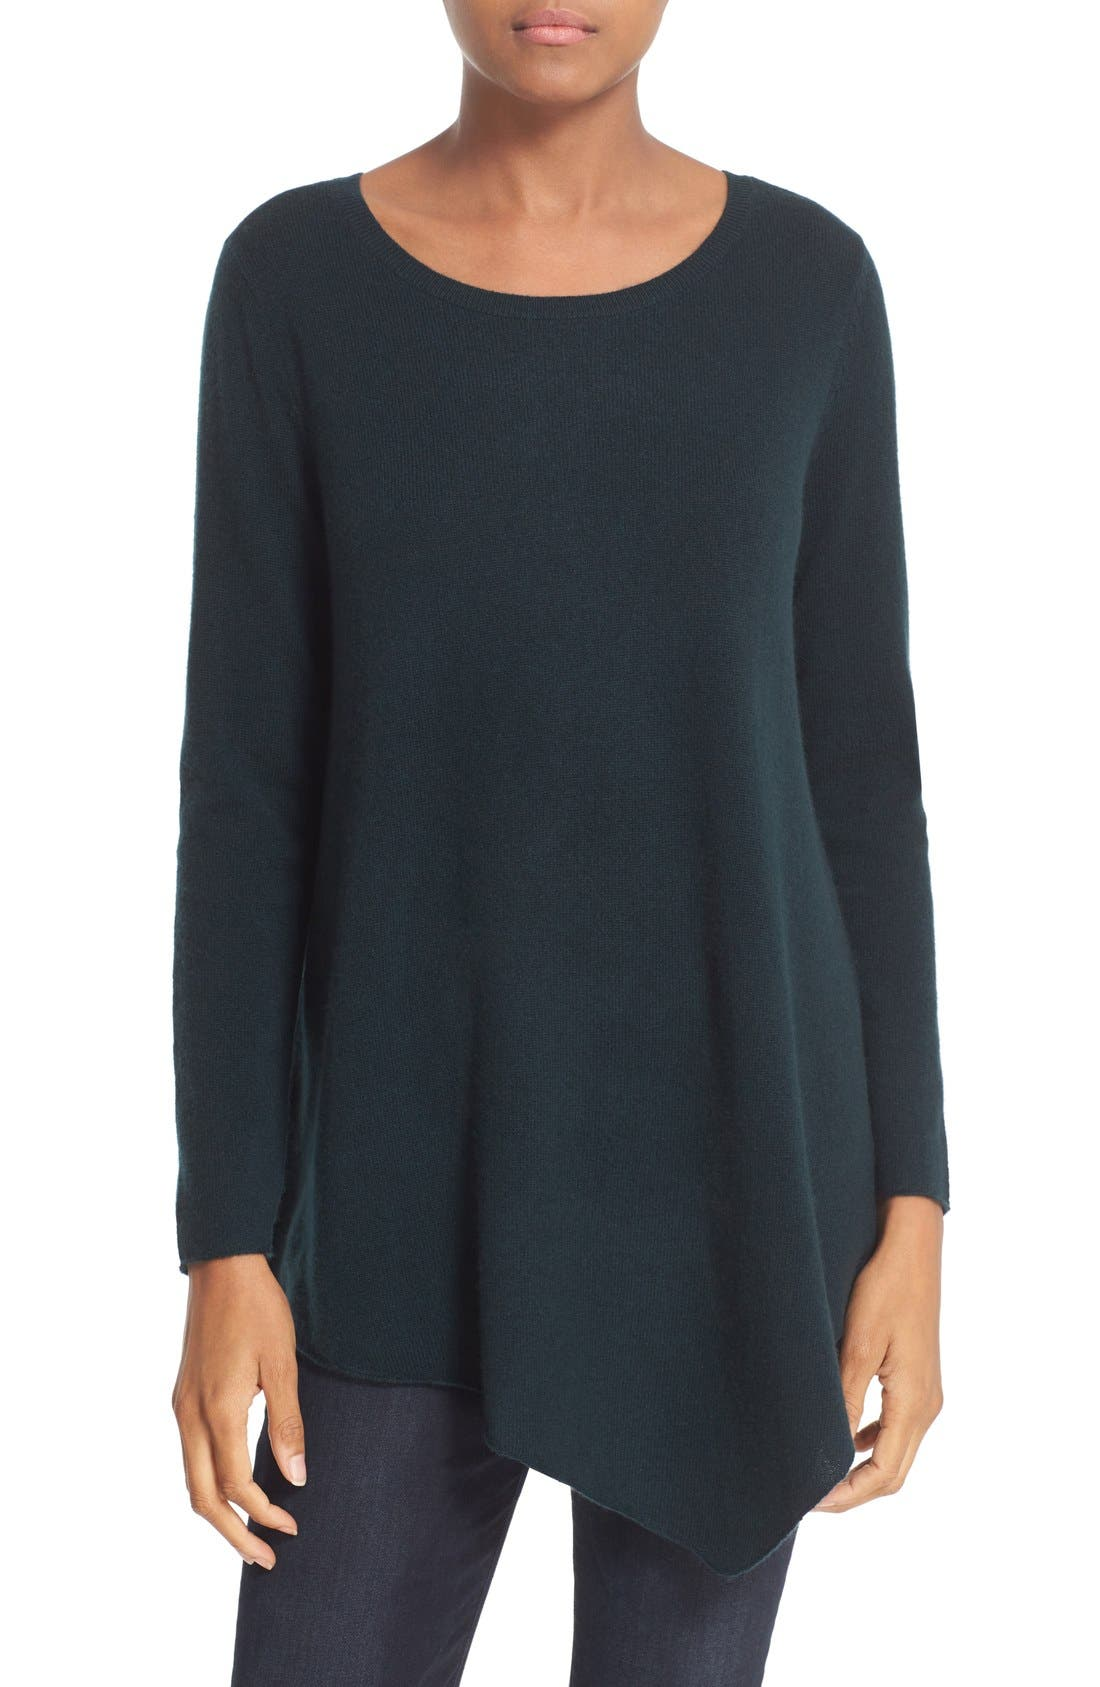 Joie 'Tambrel' Asymmetrical Sweater Tunic